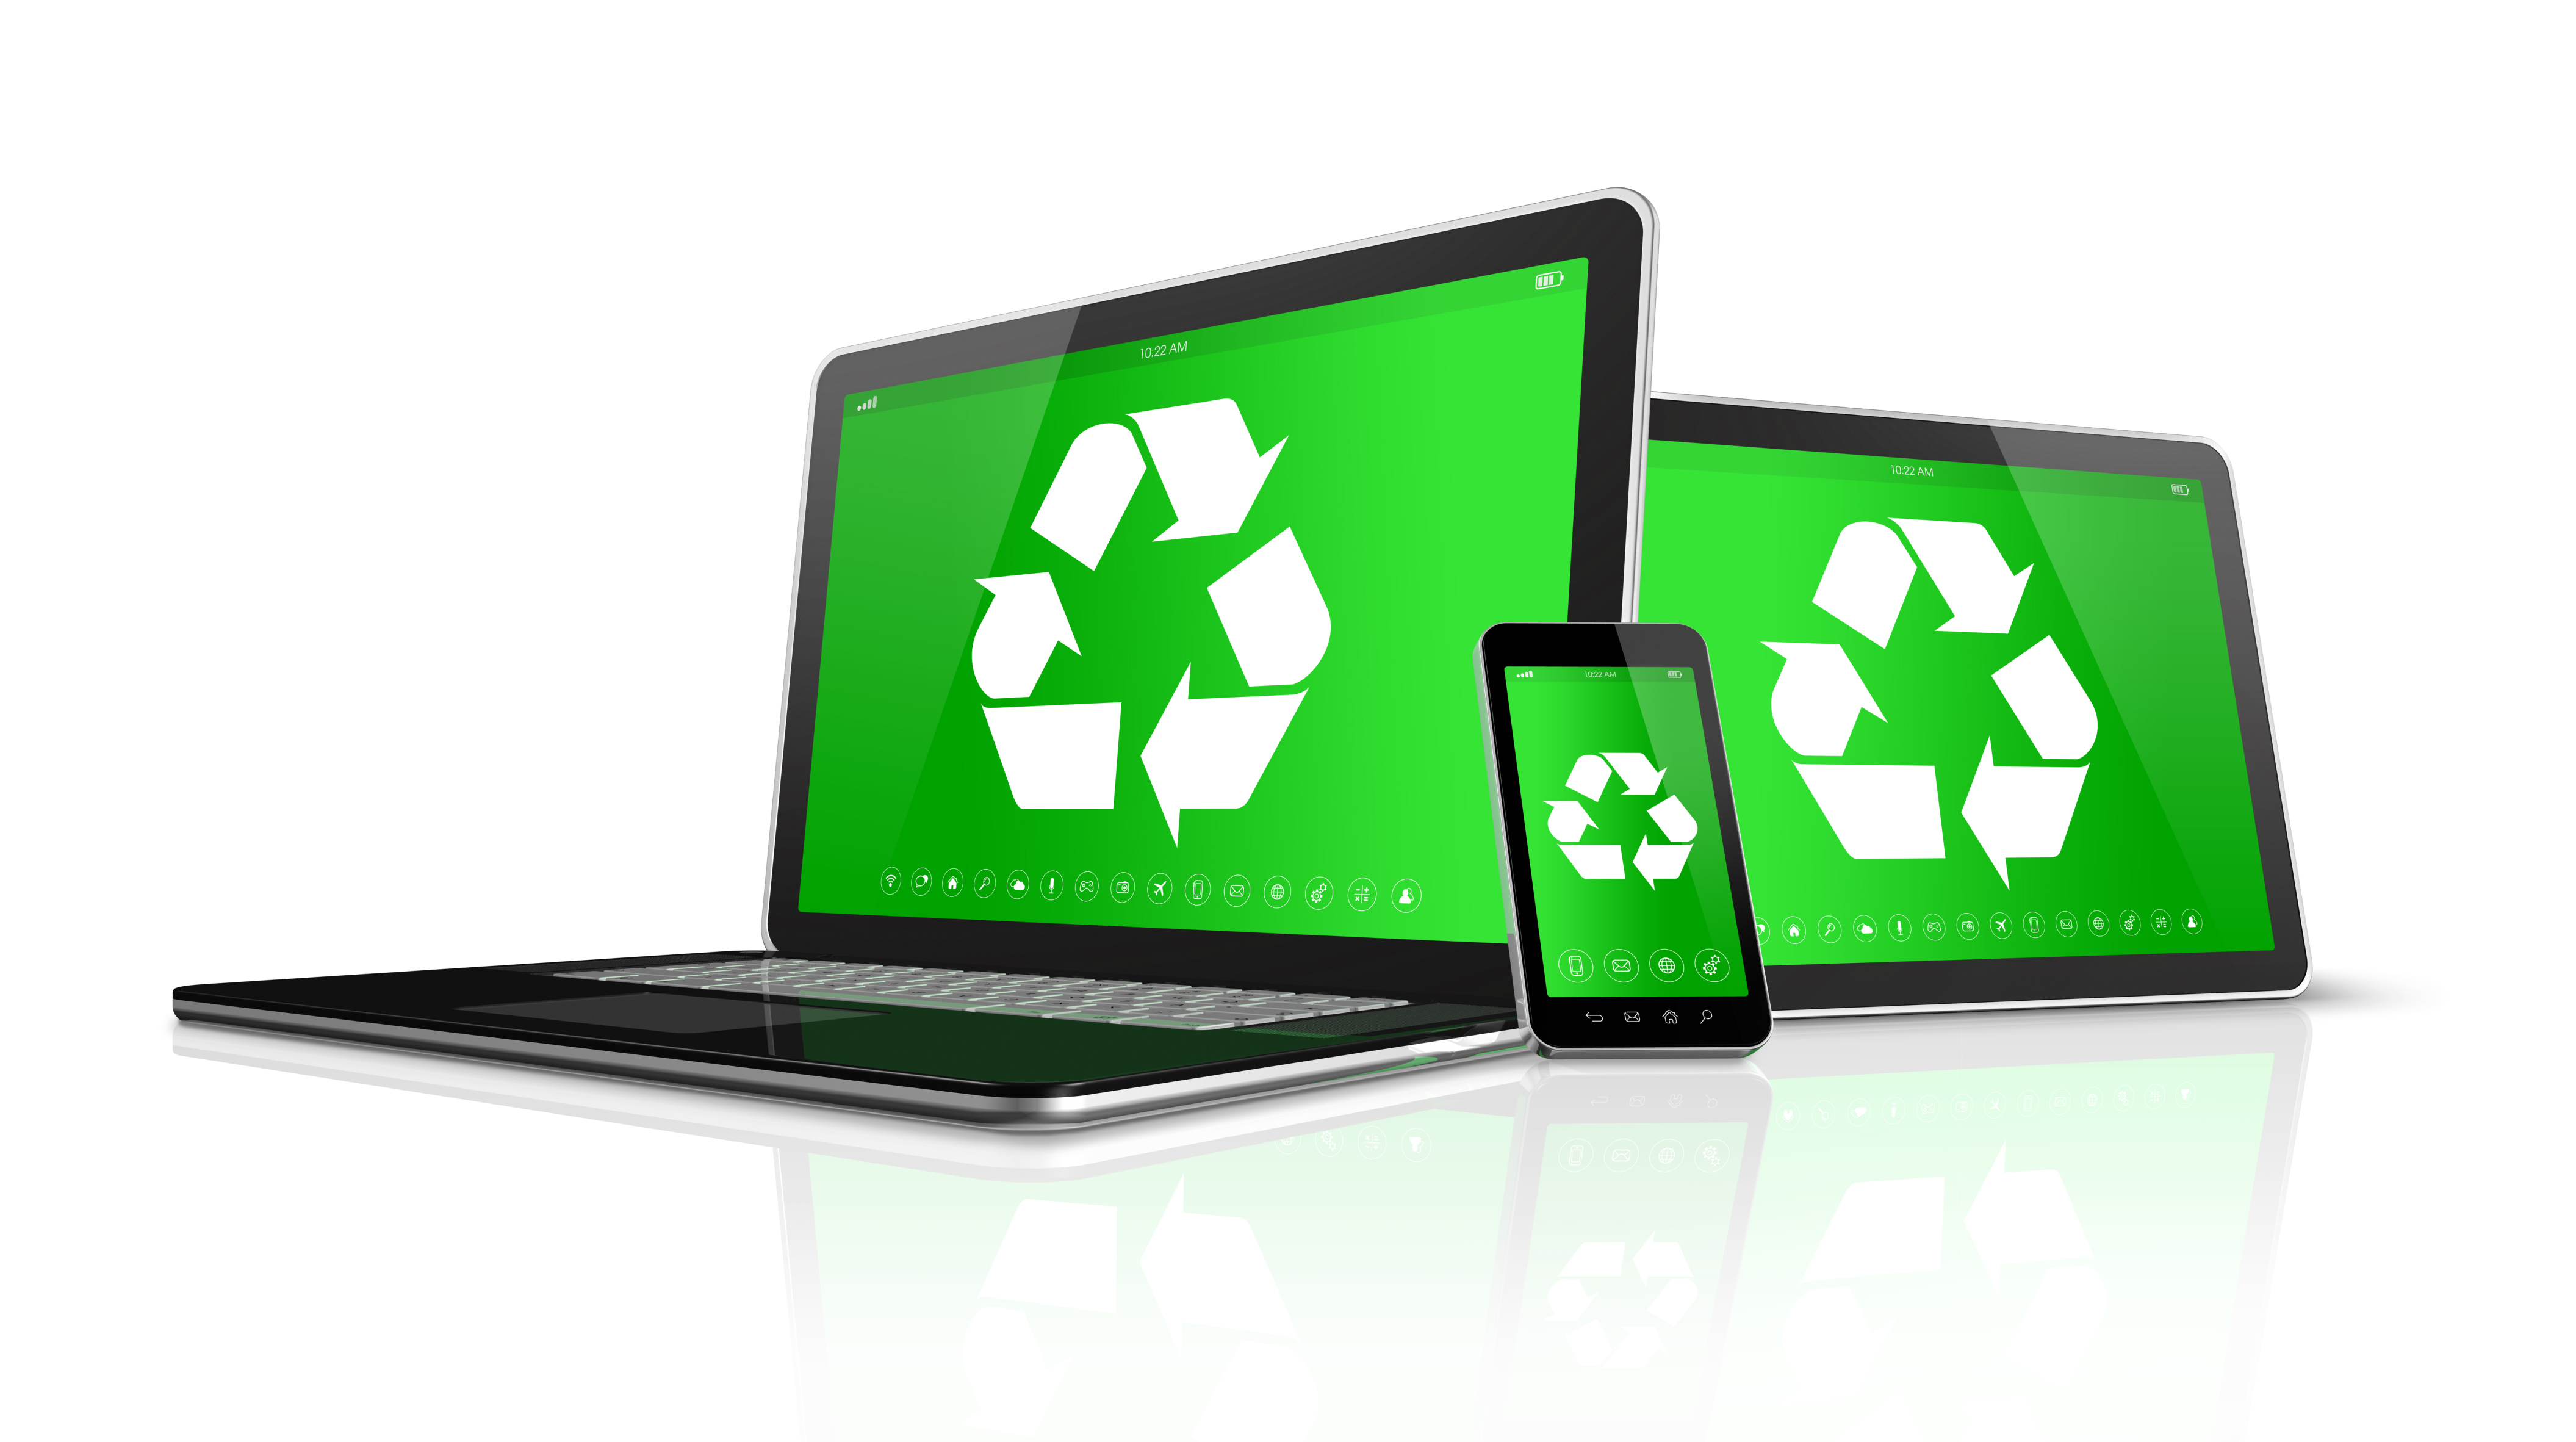 Laptop tablet PC and smartphone with a recycling symbol